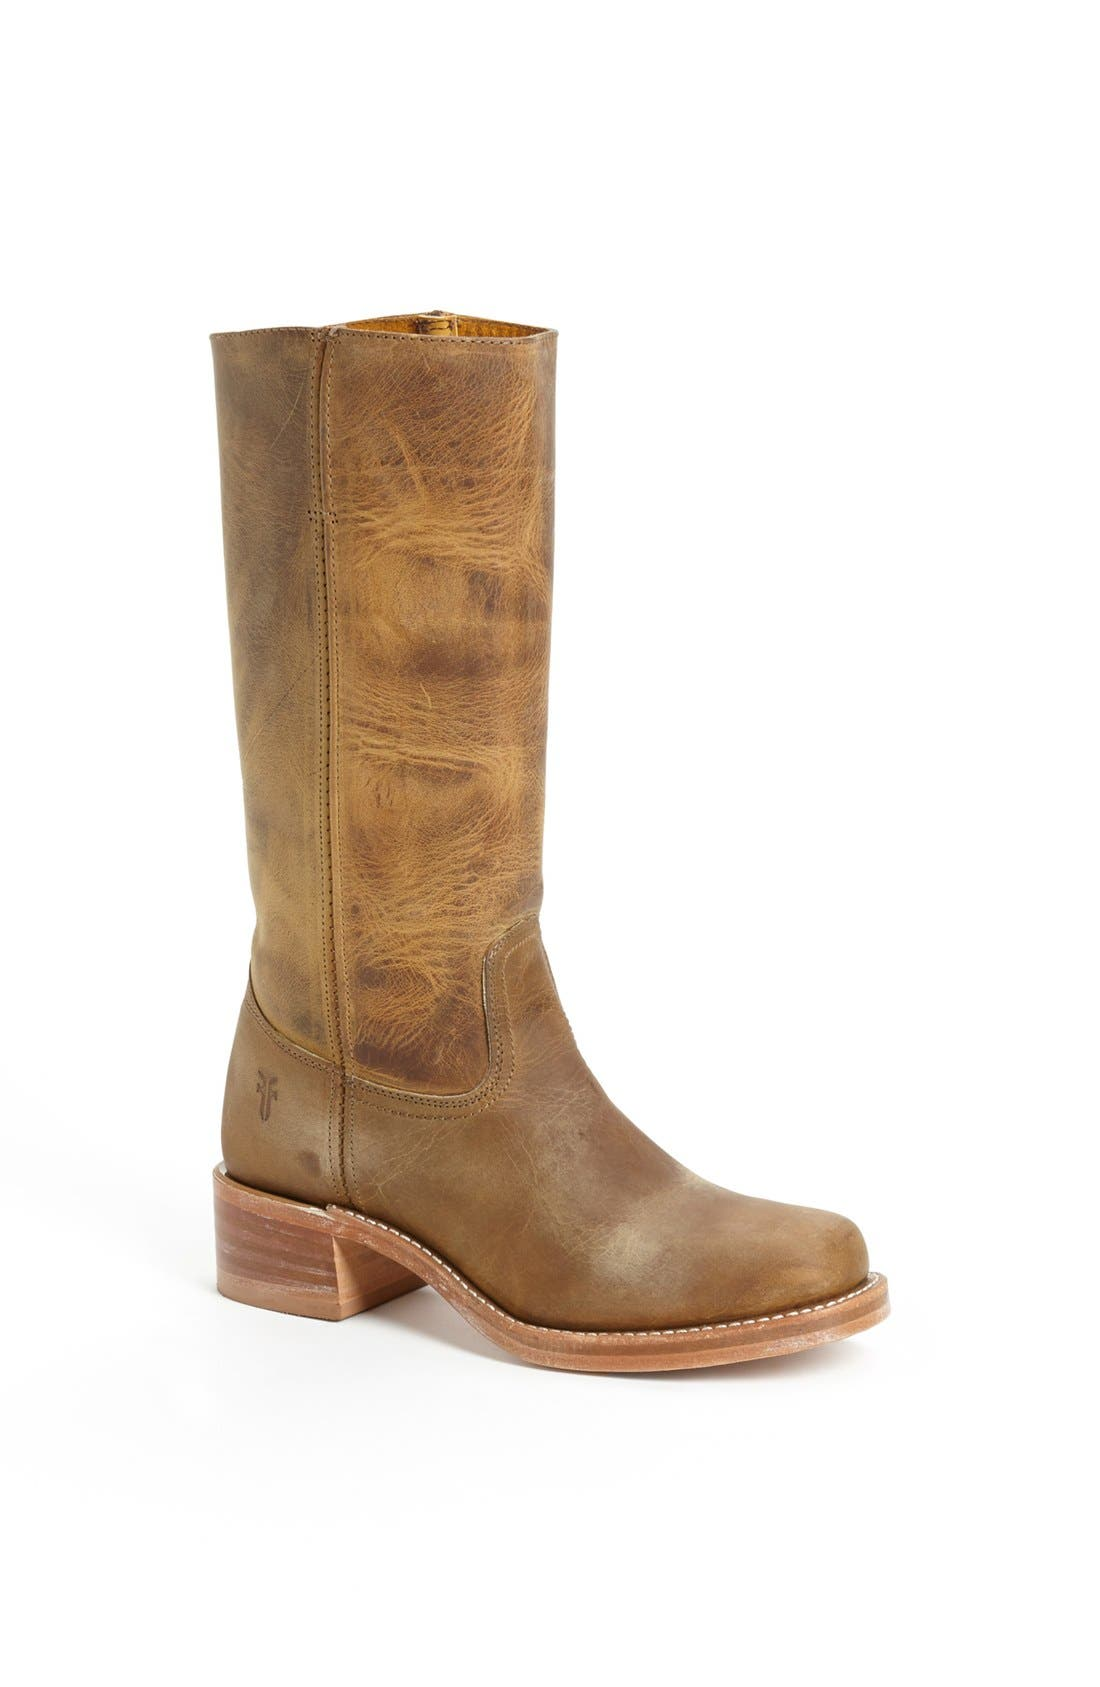 Alternate Image 1 Selected - Frye 'Campus 14L' Boot (Women)